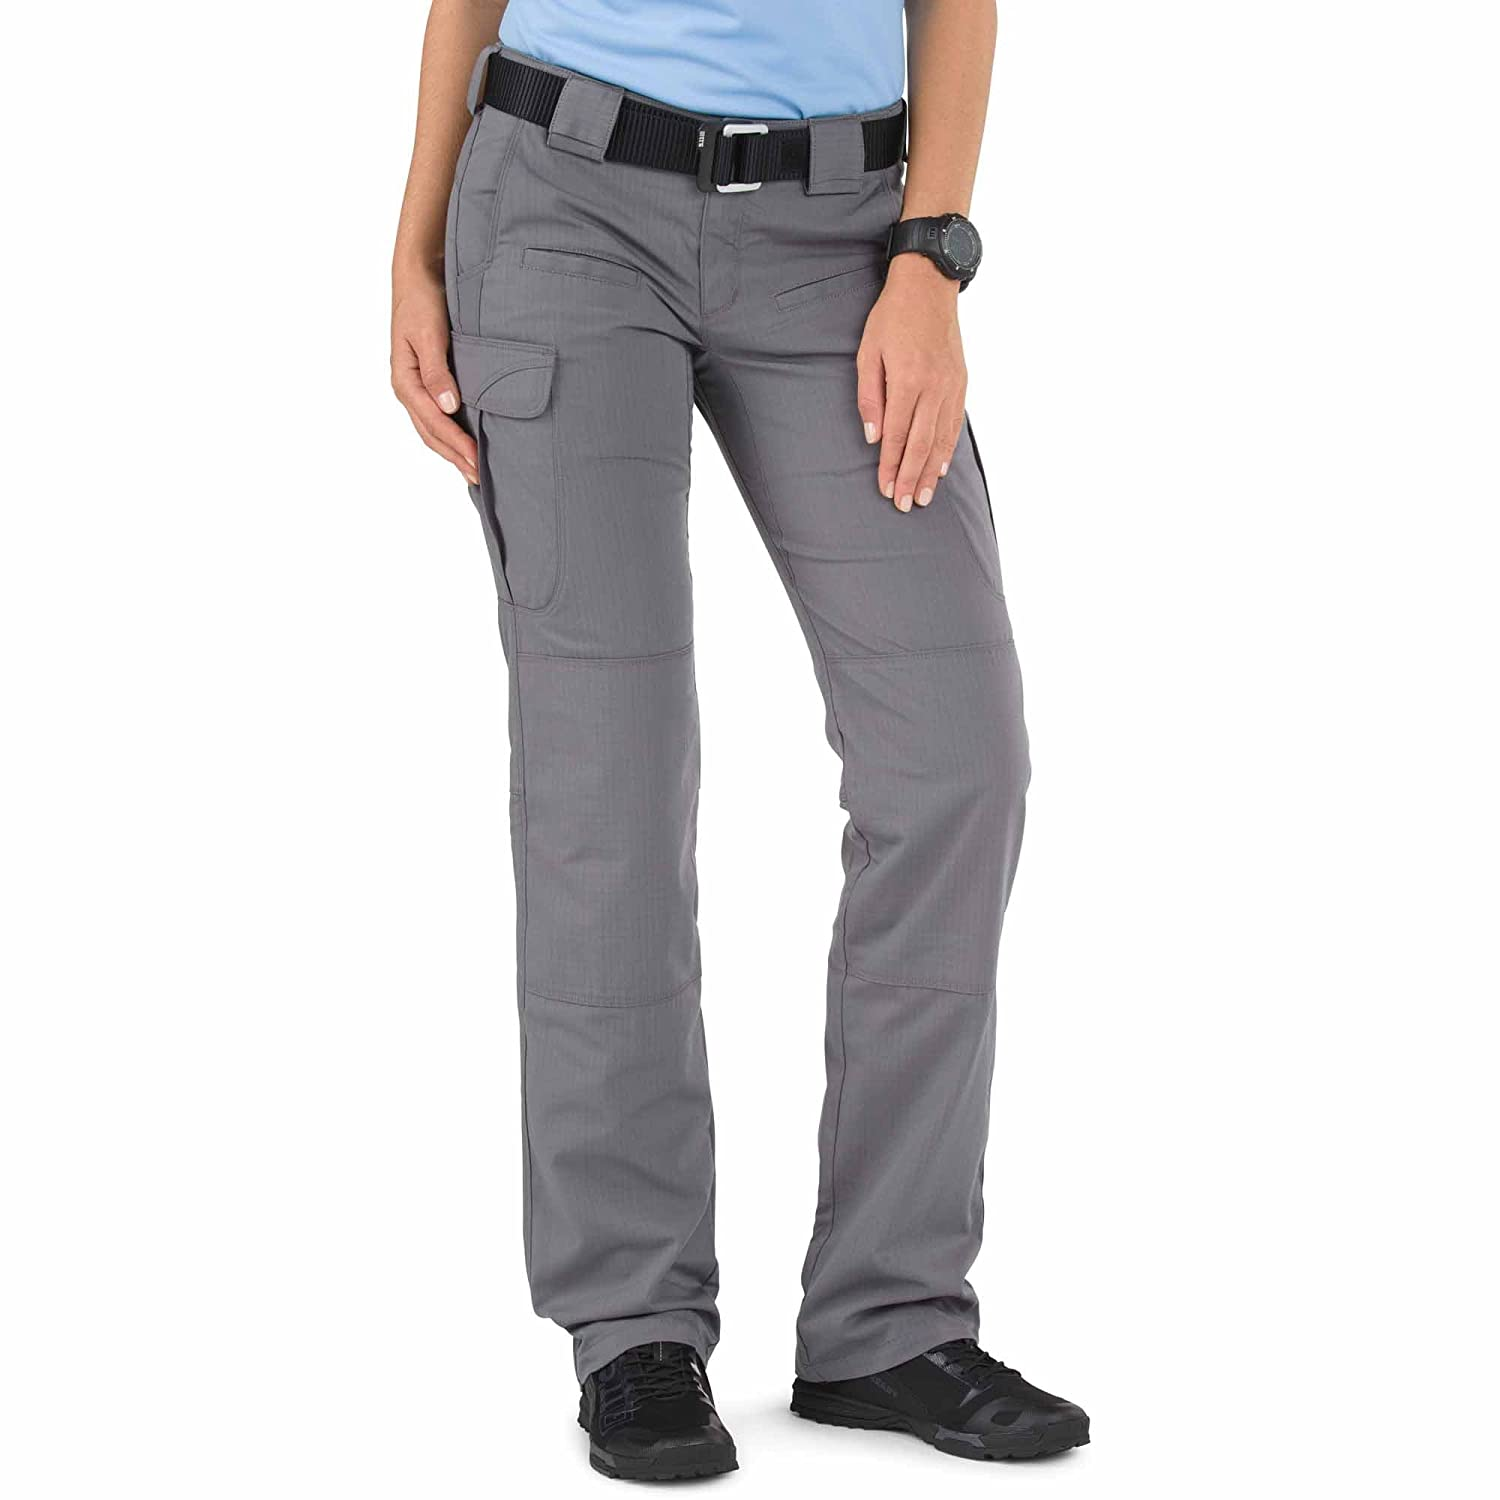 5.11 Tactical Women's Stryke Pant A.C. Kerman - LE